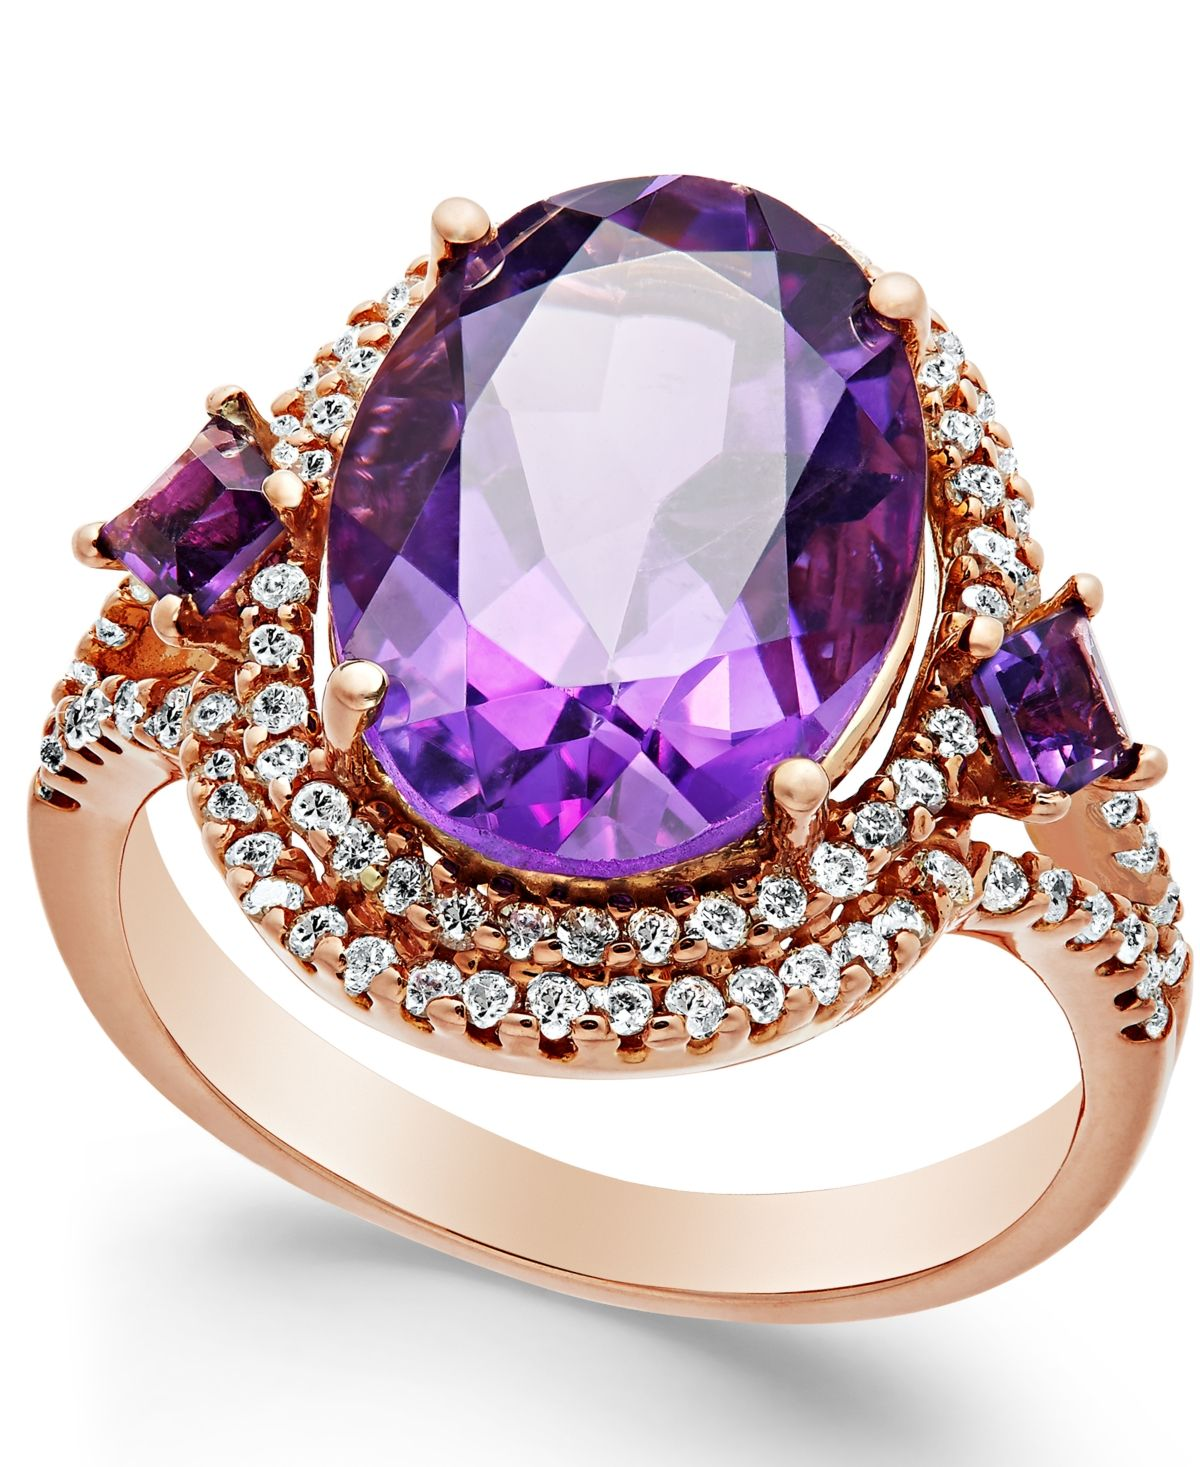 Sterling Silver 5.00 ct tw Checkerboard Faceted Amethyst Ring Size 9